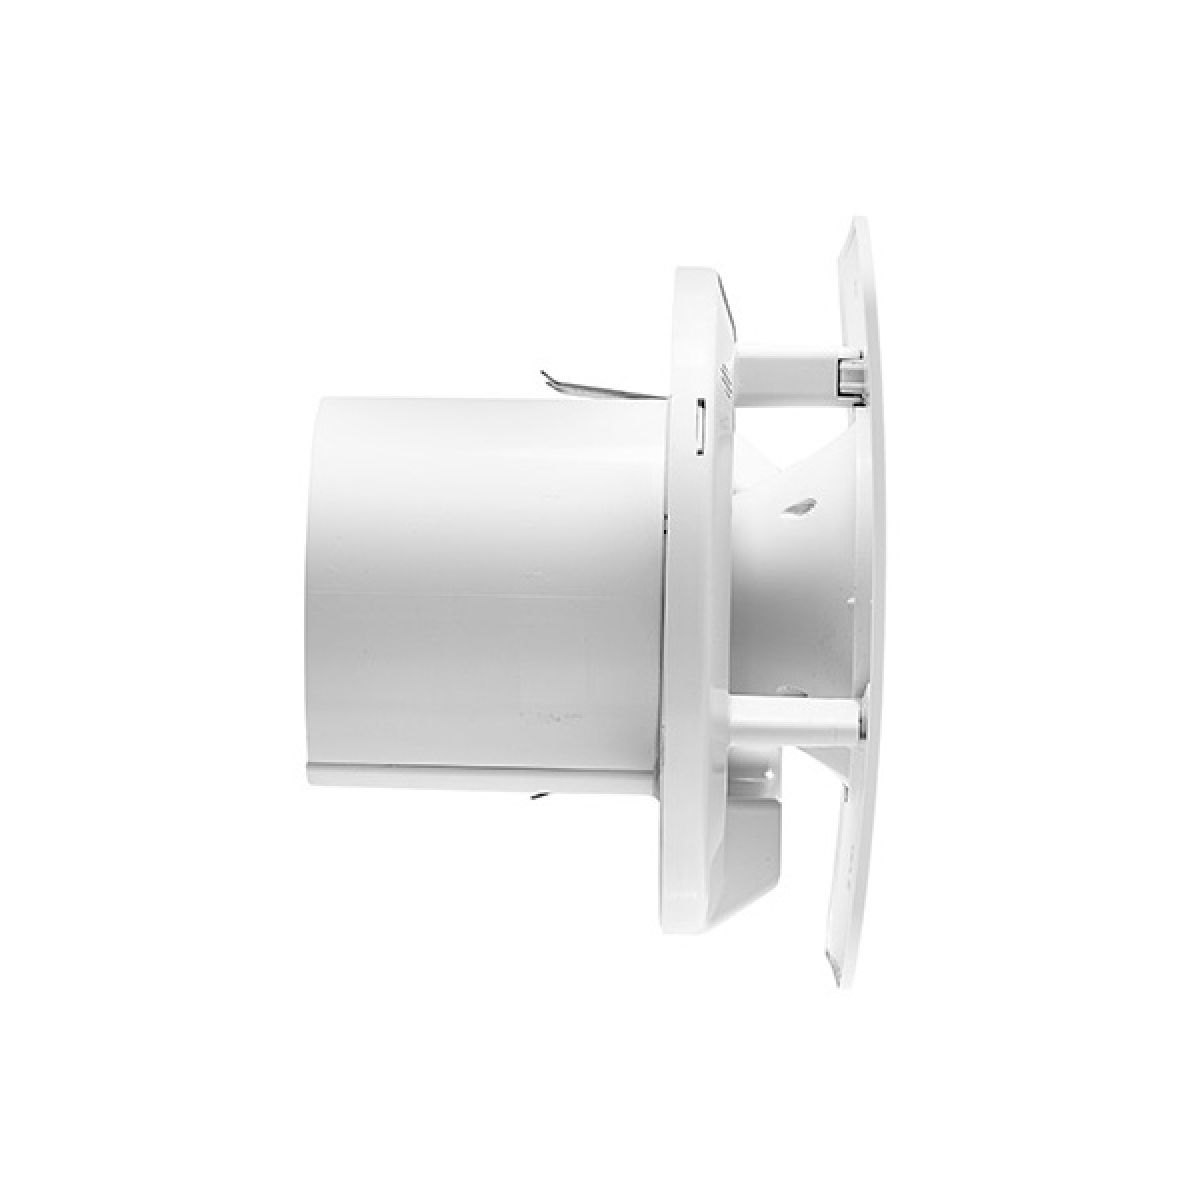 Xpelair Simply Silent Contour Square Bathroom Fan with Pullcord 100mm - Side